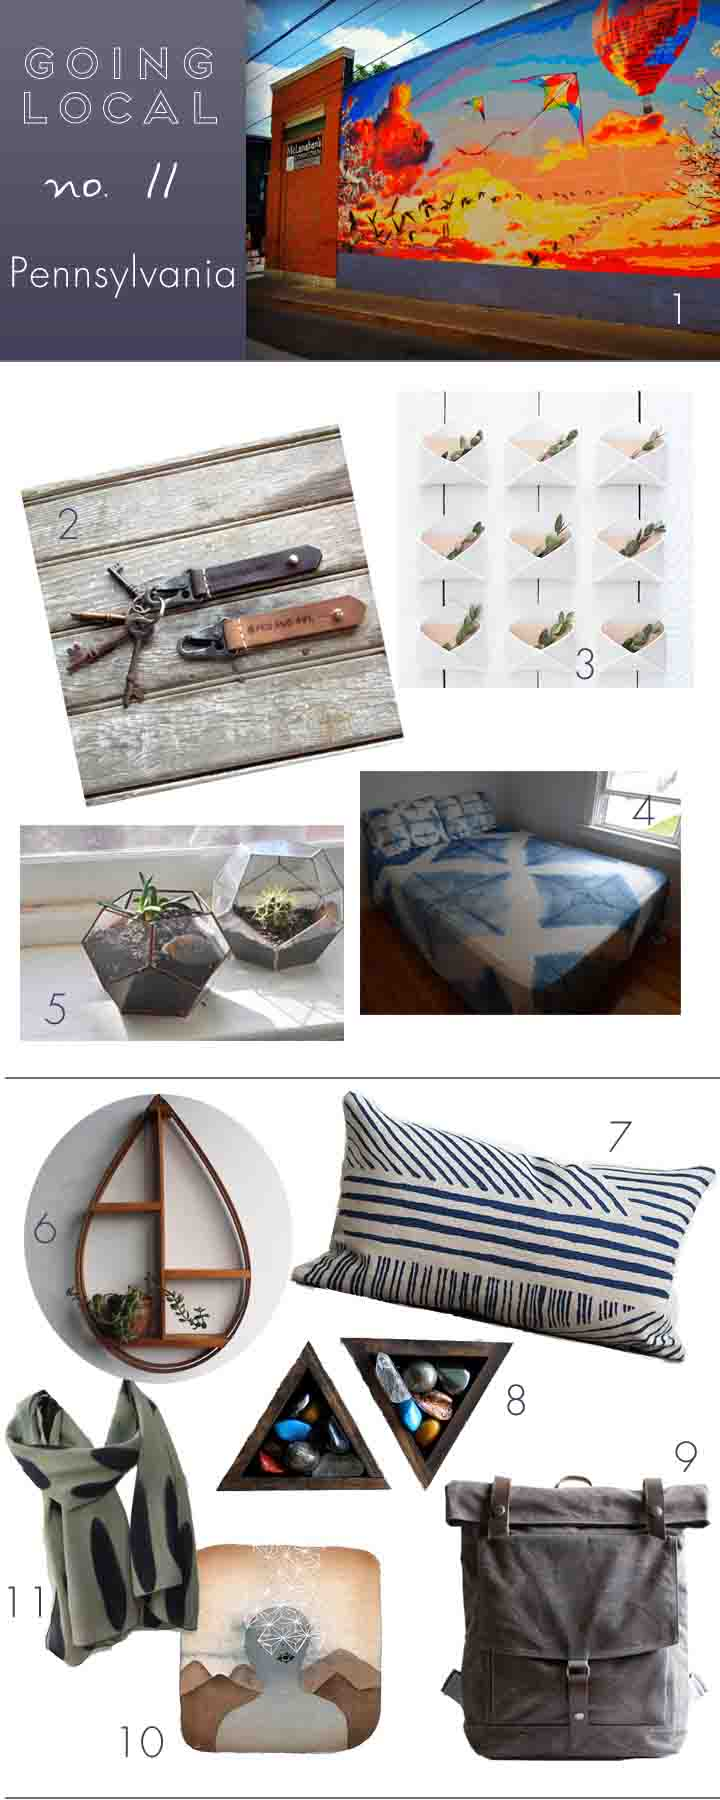 Pinterest-Etsy Pennsylvania Roundup-  Go Local